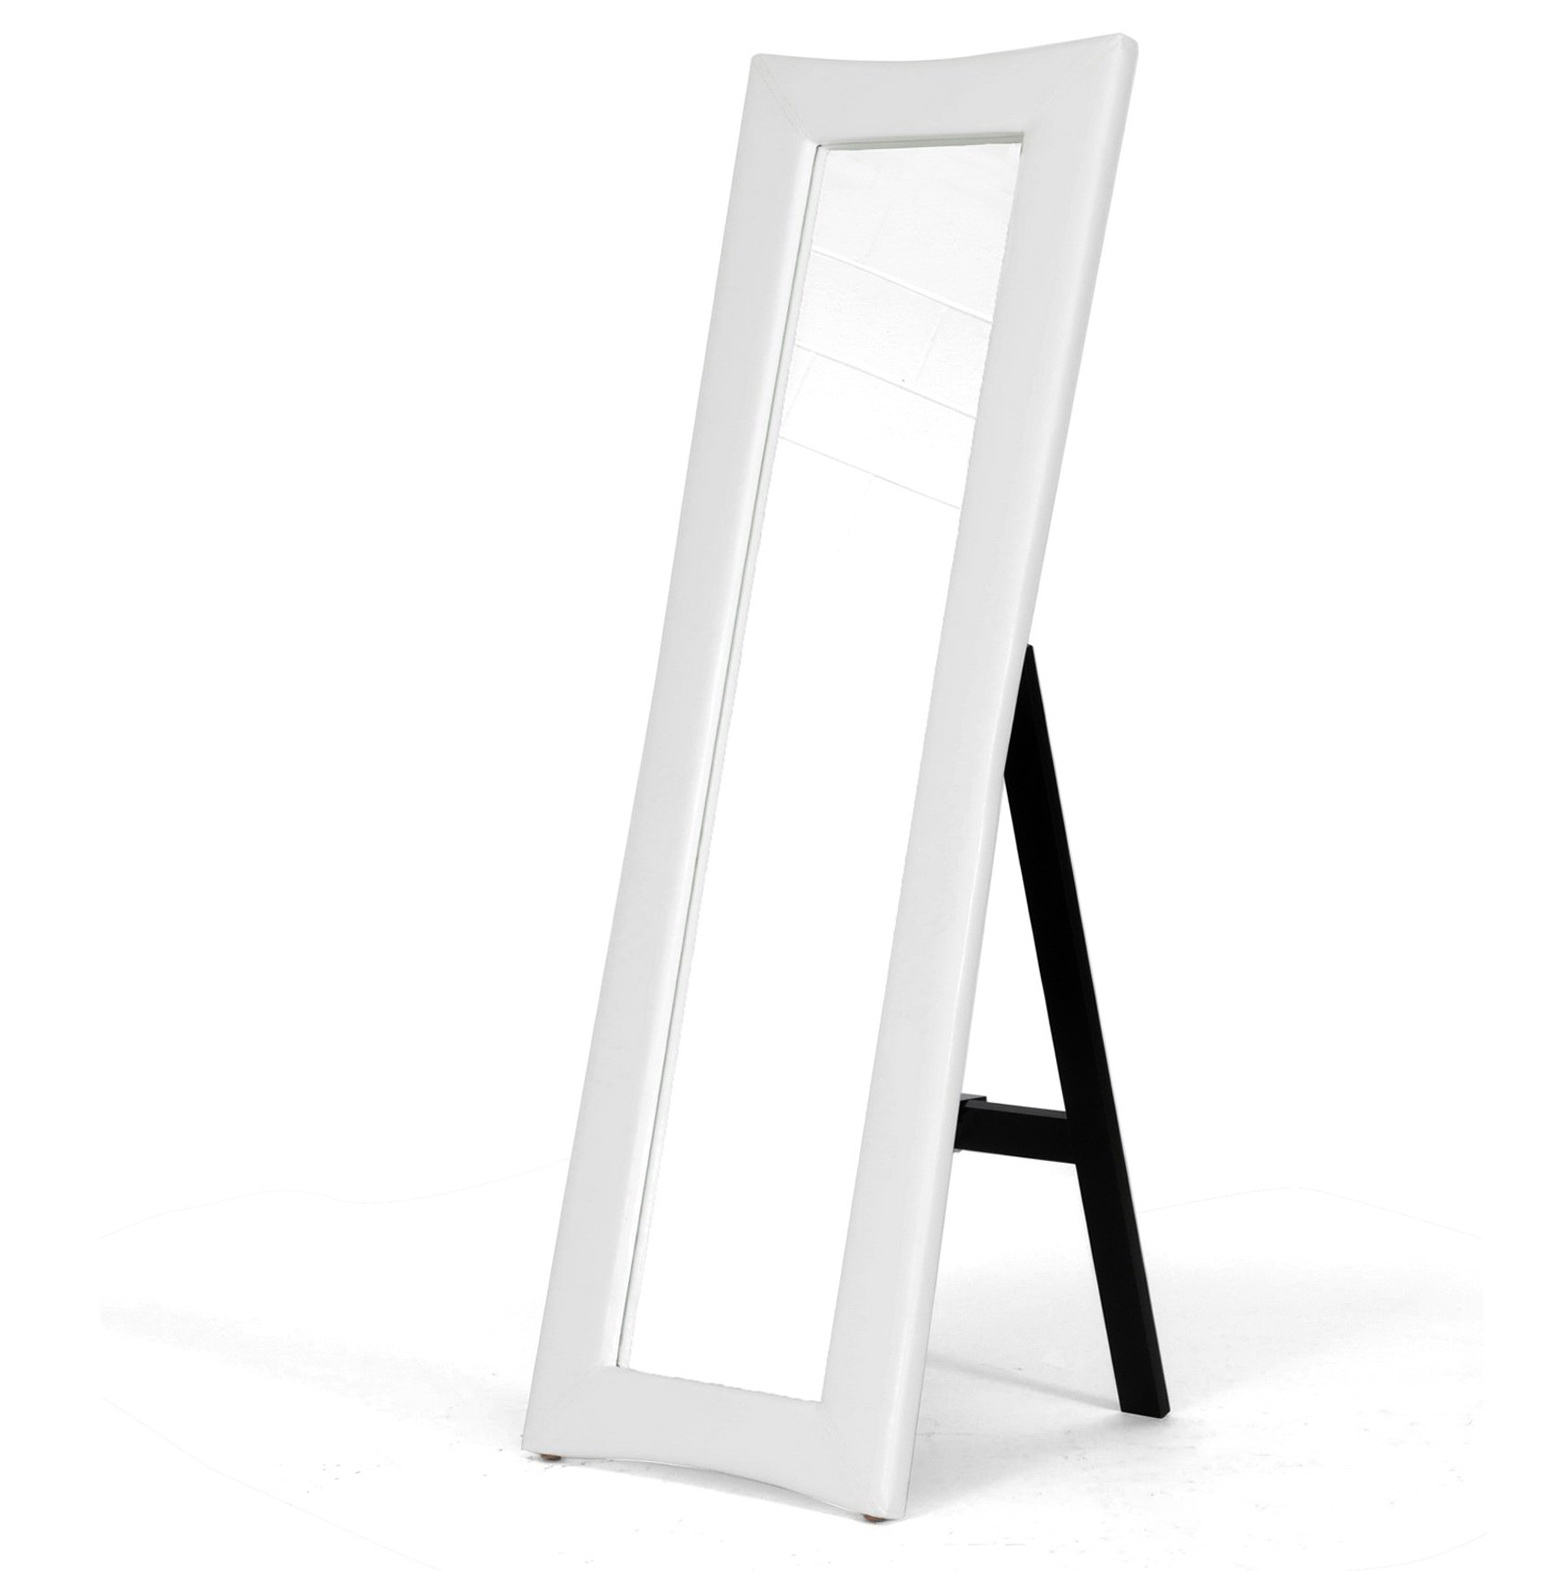 White floor length mirror stunning bathrooms for Floor mirror white frame